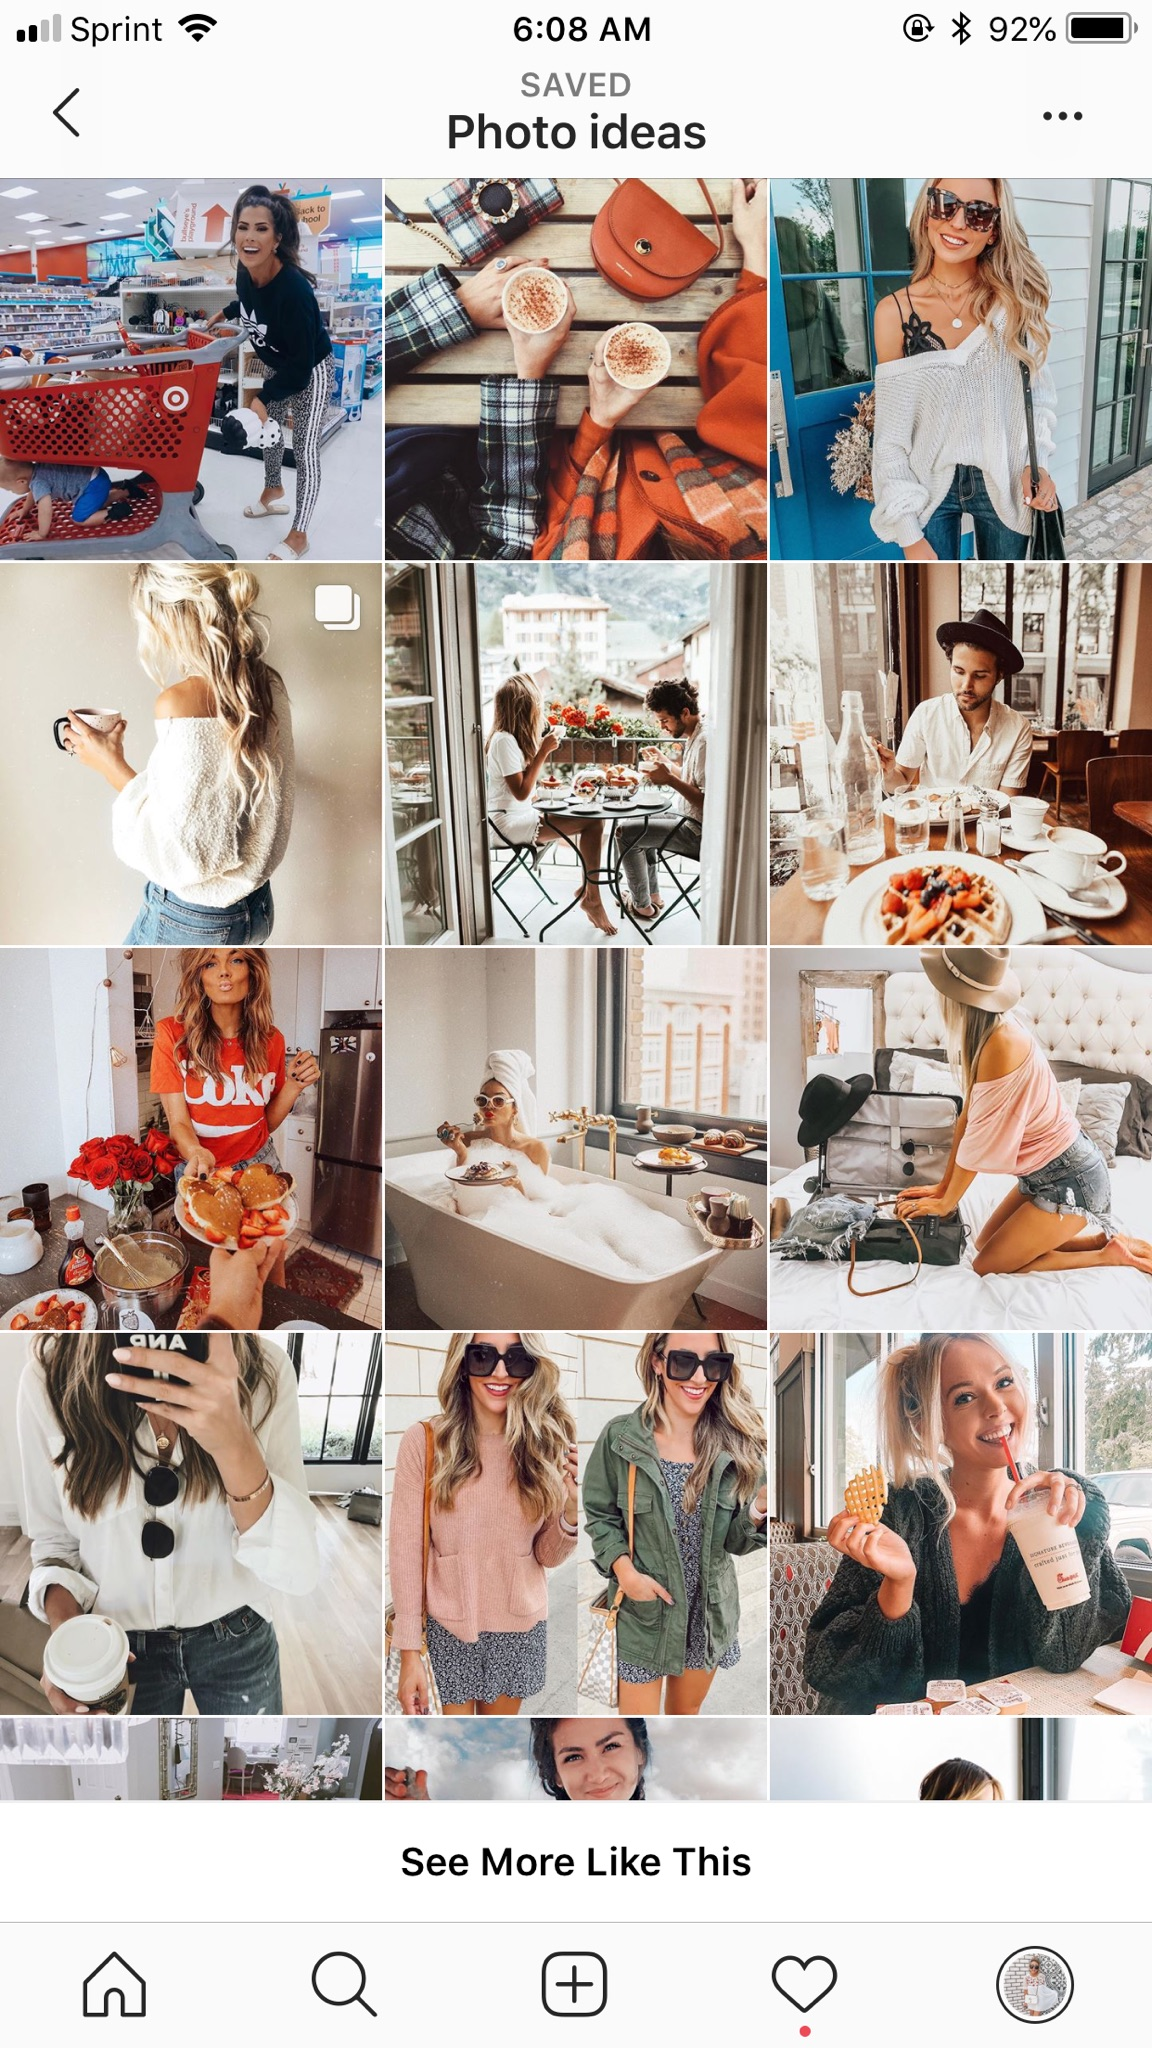 instagram feed- photo ideas